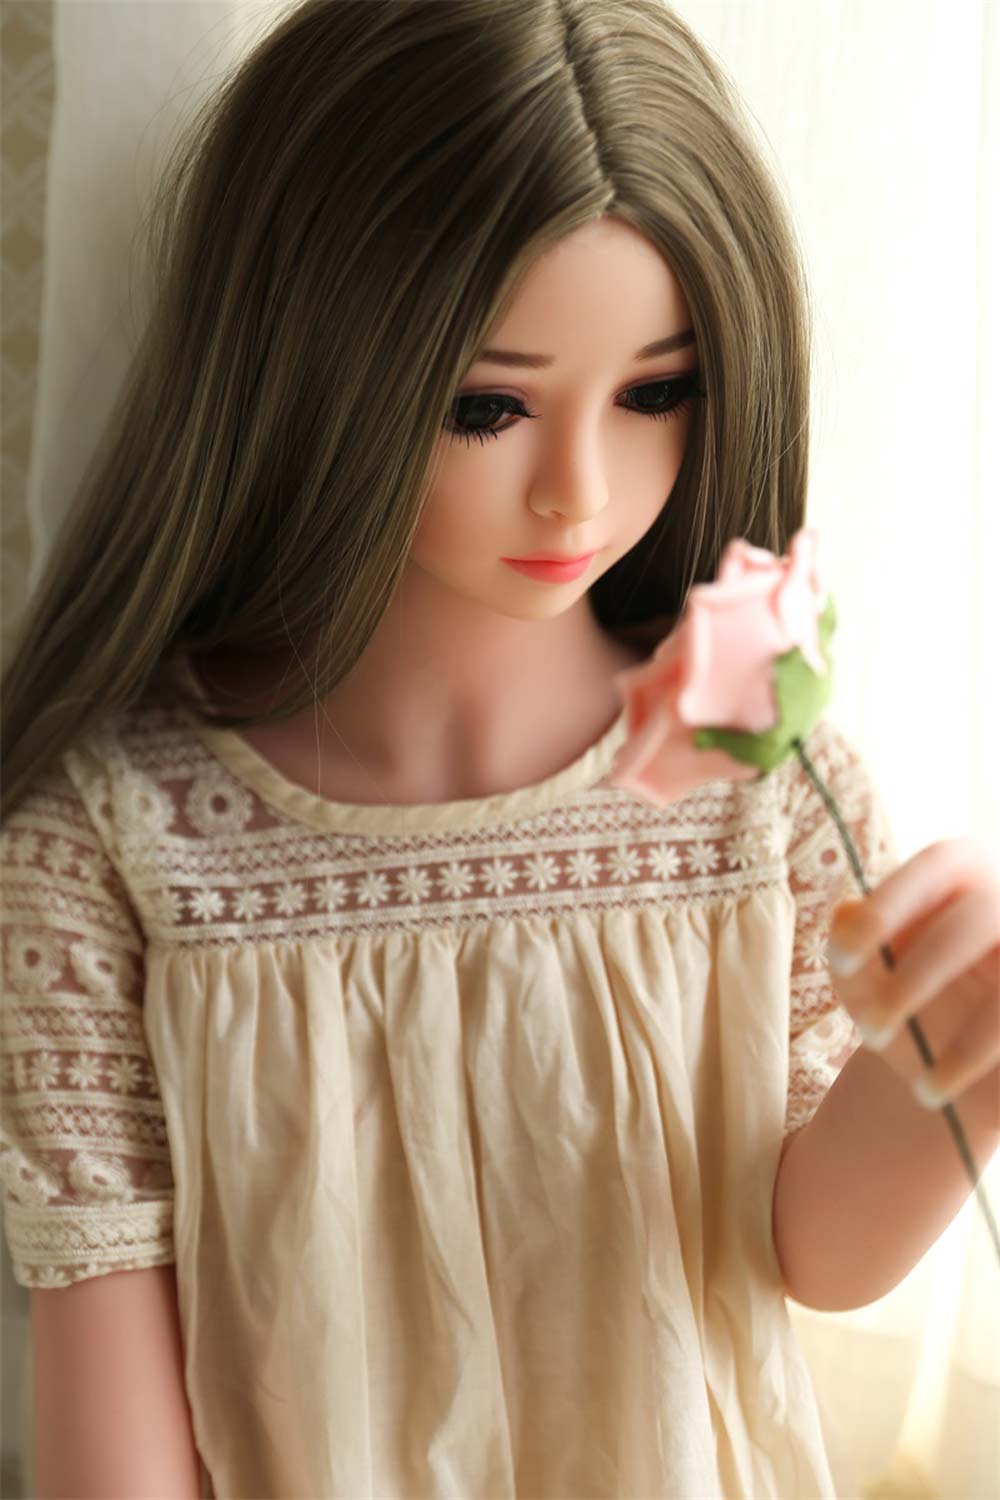 Real Young Sex Doll